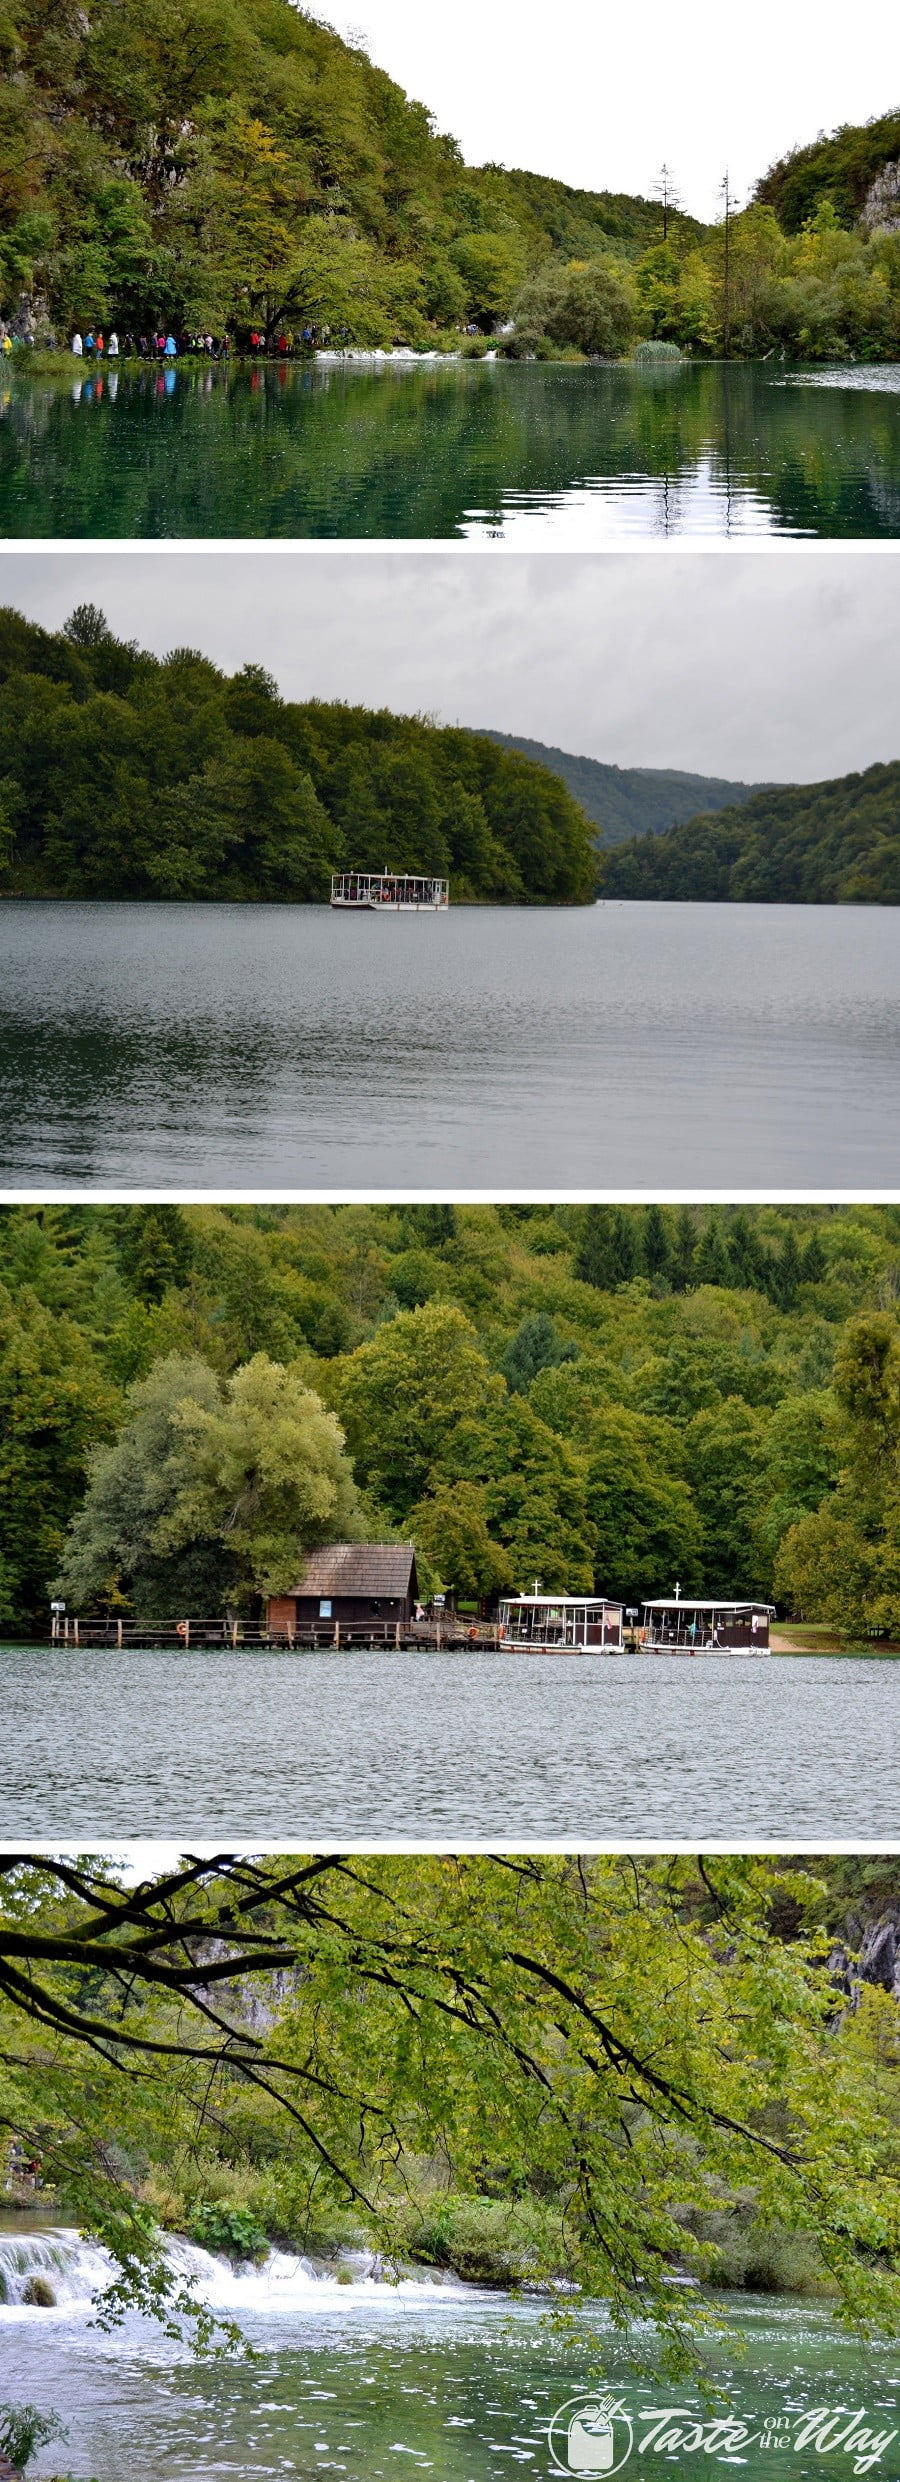 Check out these awesome pictures of the Lake Kozjak in Plitvice Lakes National Park, #Croatia #travel #photography @tasteontheway